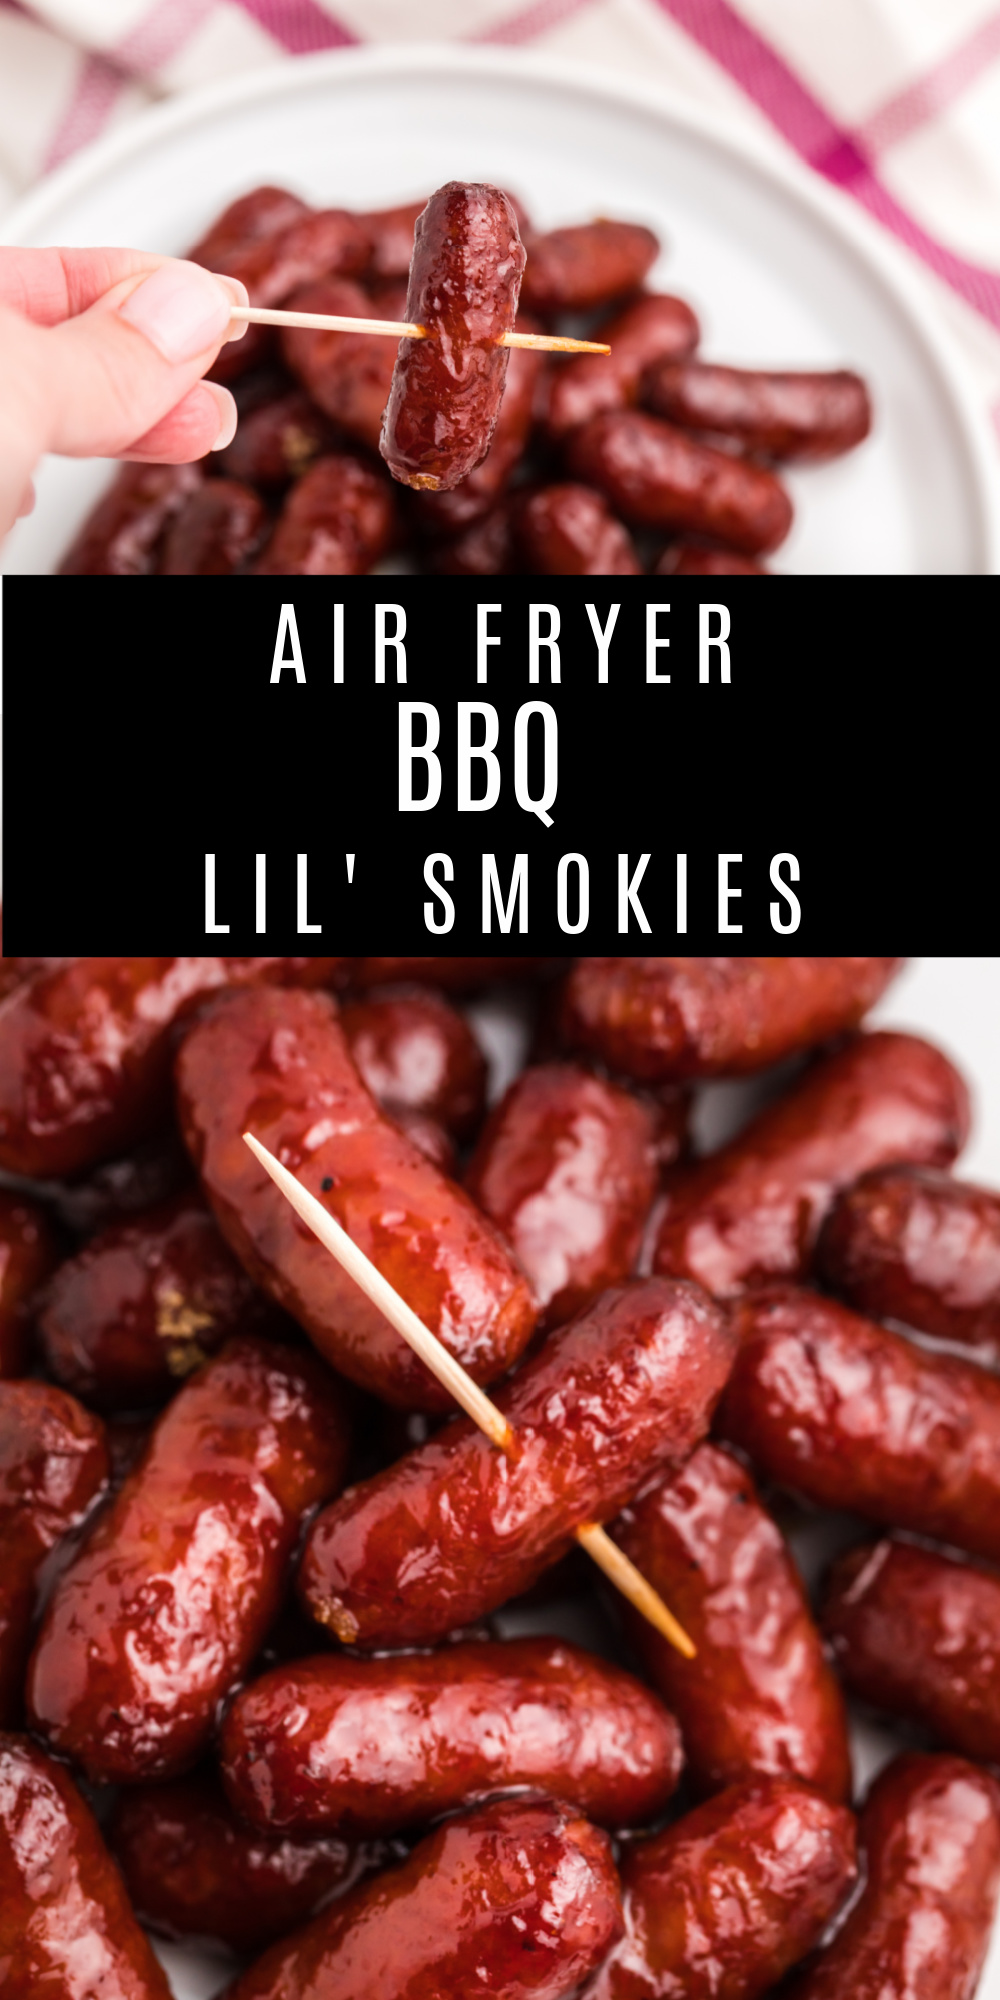 Air Fryer BBQ Lil Smokies are an easy air fryer appetizer made with just 3 ingredients. Make this classic appetizer that's perfect for family gatherings or to serve during the big game. You'll love this easy air fryer recipe and how fast it is to put together, and how fast they will disappear!